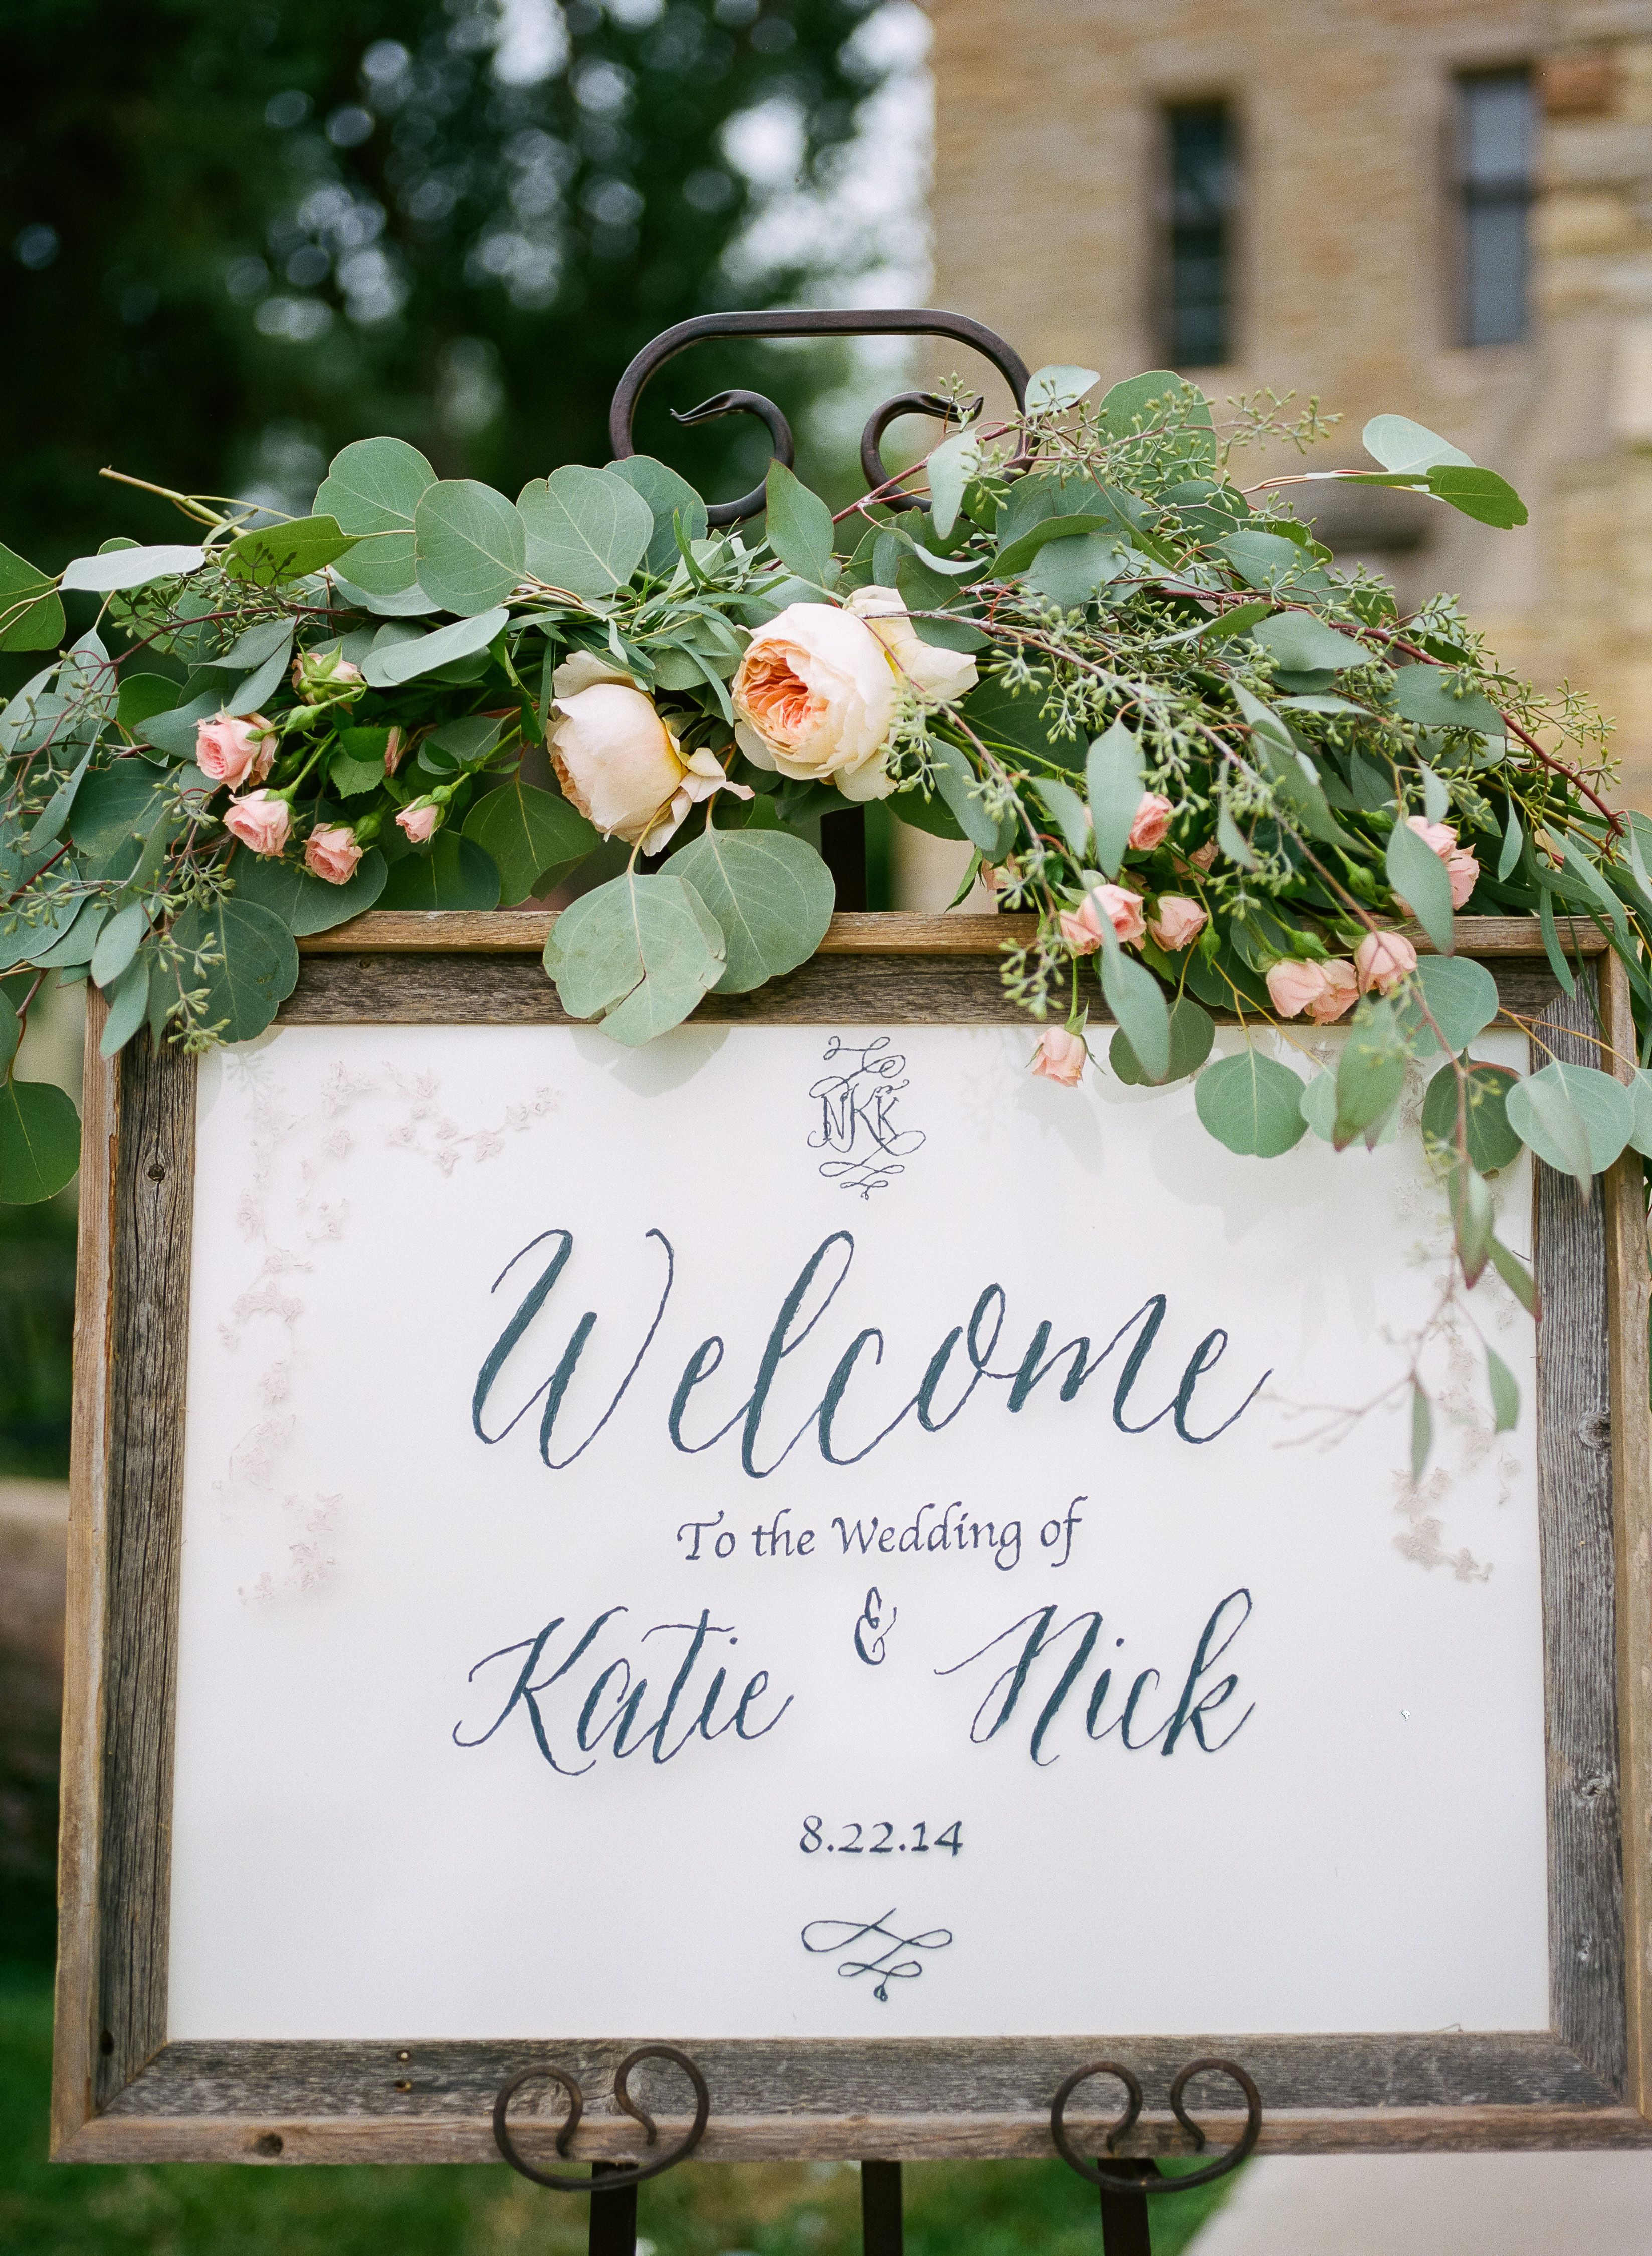 simple outdoor wedding ideas for summer%0A DIY Framed Welcome Sign with Eucalyptus and Garden Rose Decor  Wedding  Centerpieces